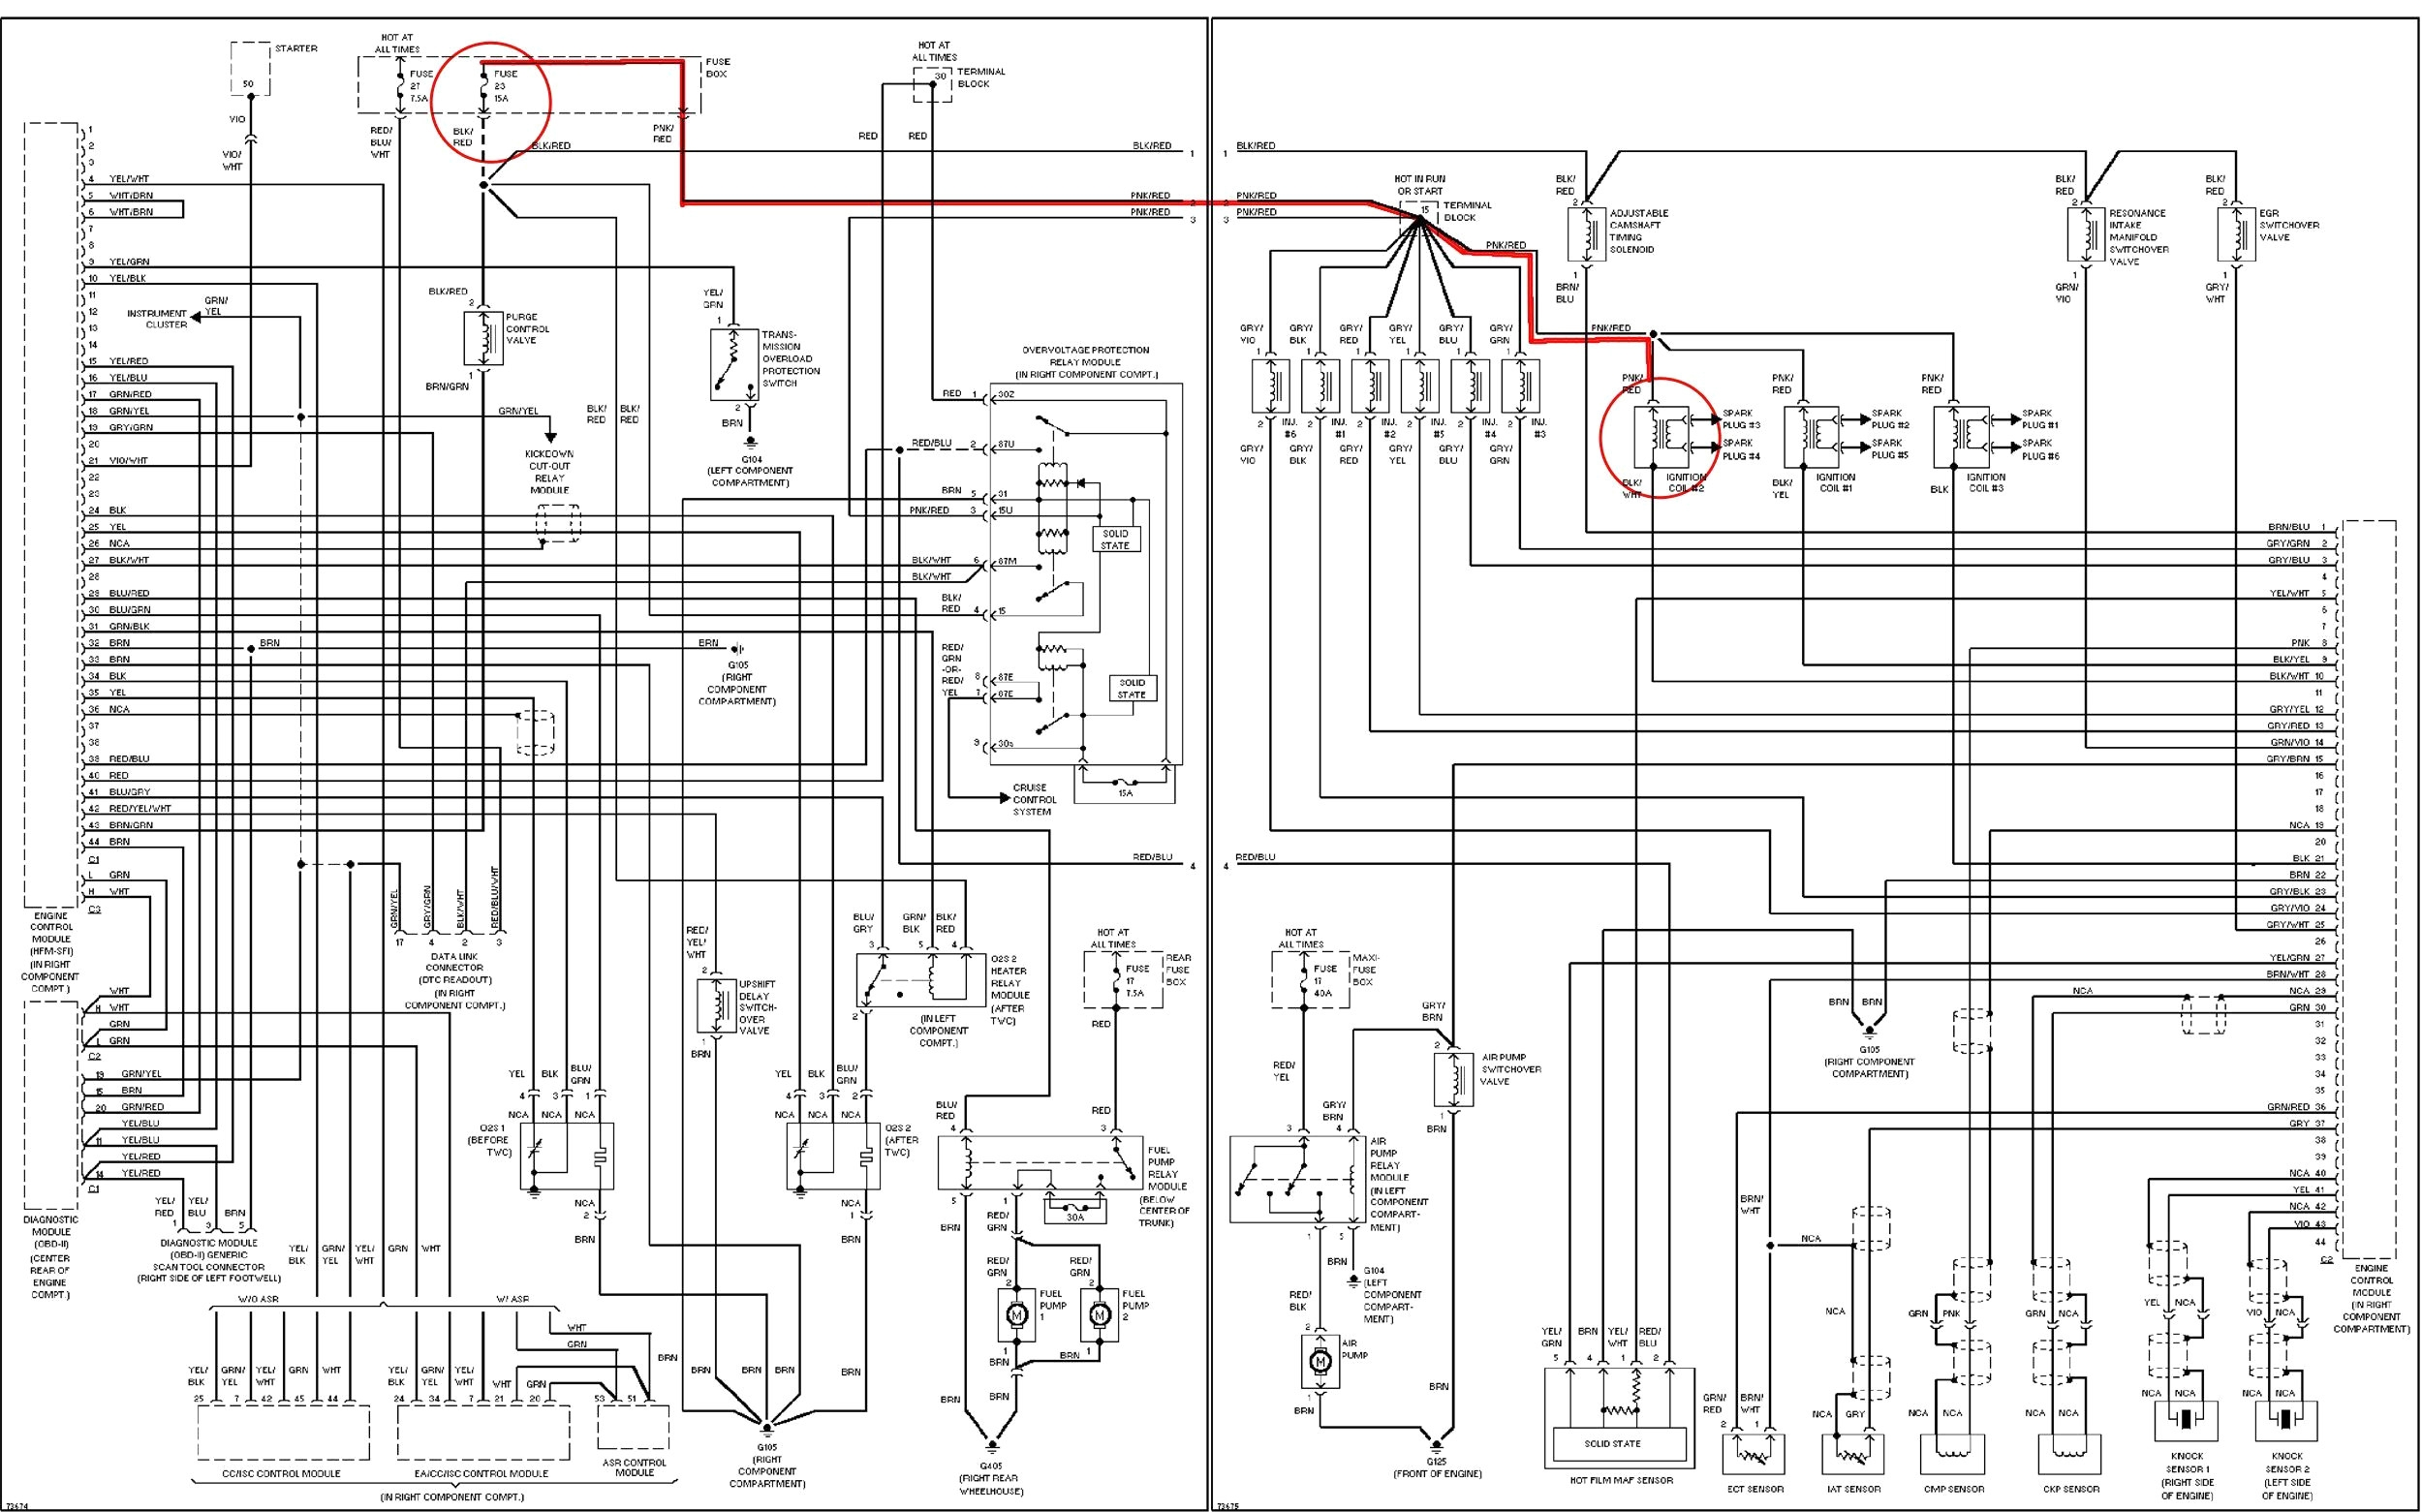 [ZSVE_7041]  2015 Mercedes Benz C Class Wiring Diagram - Japan Wiring Diagram for Wiring  Diagram Schematics | Mercedes A Class Wiring Diagram |  | Wiring Diagram Schematics